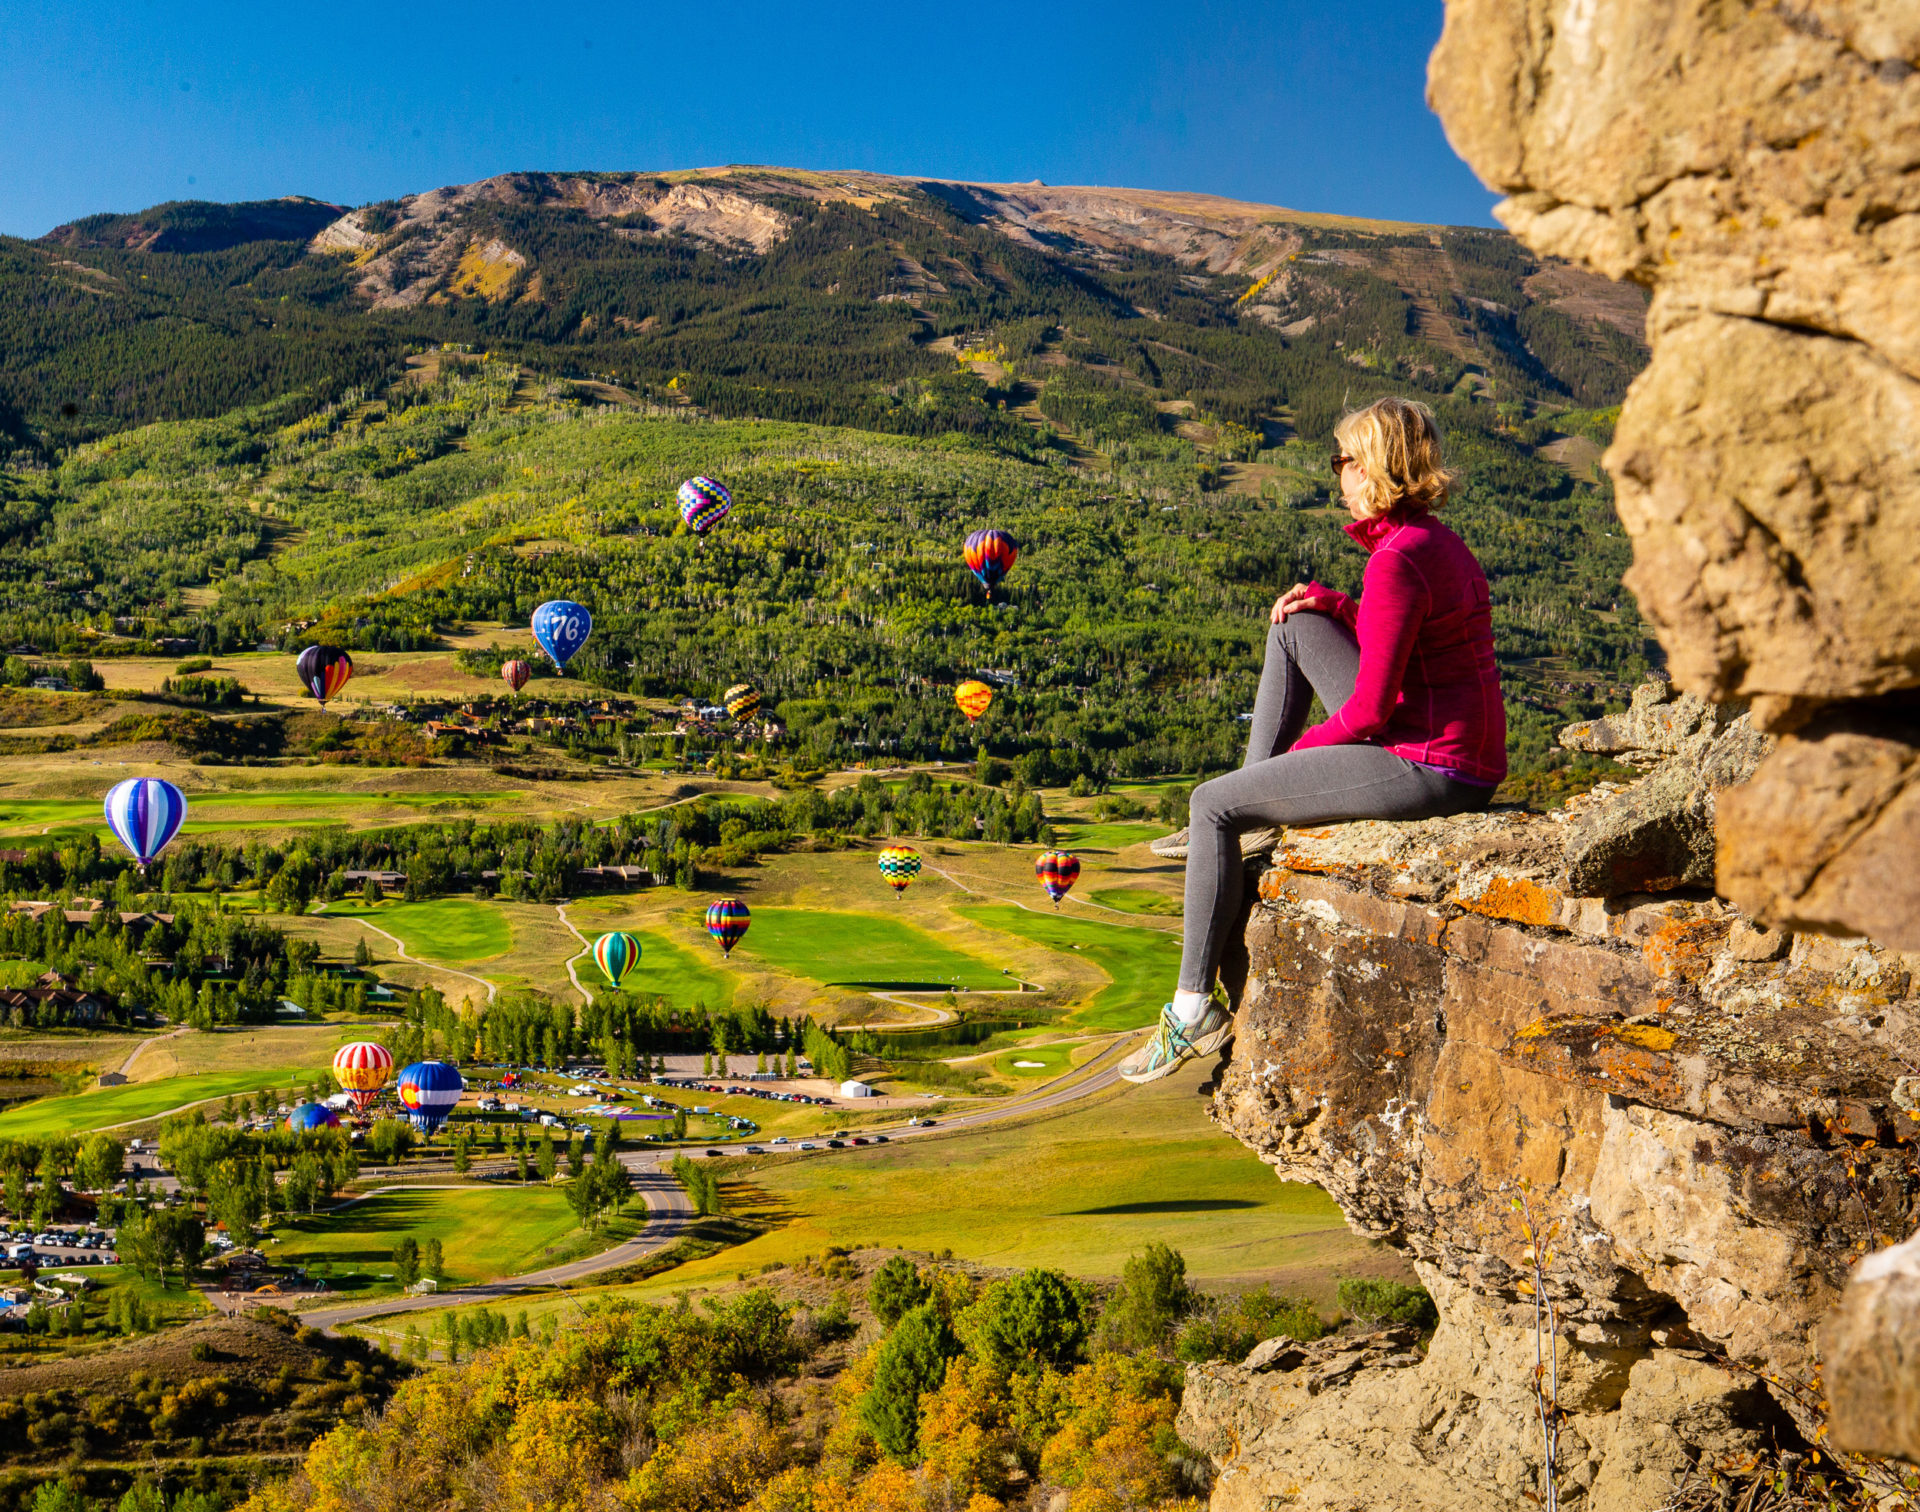 Woman watching hot air balloons from side of cliff